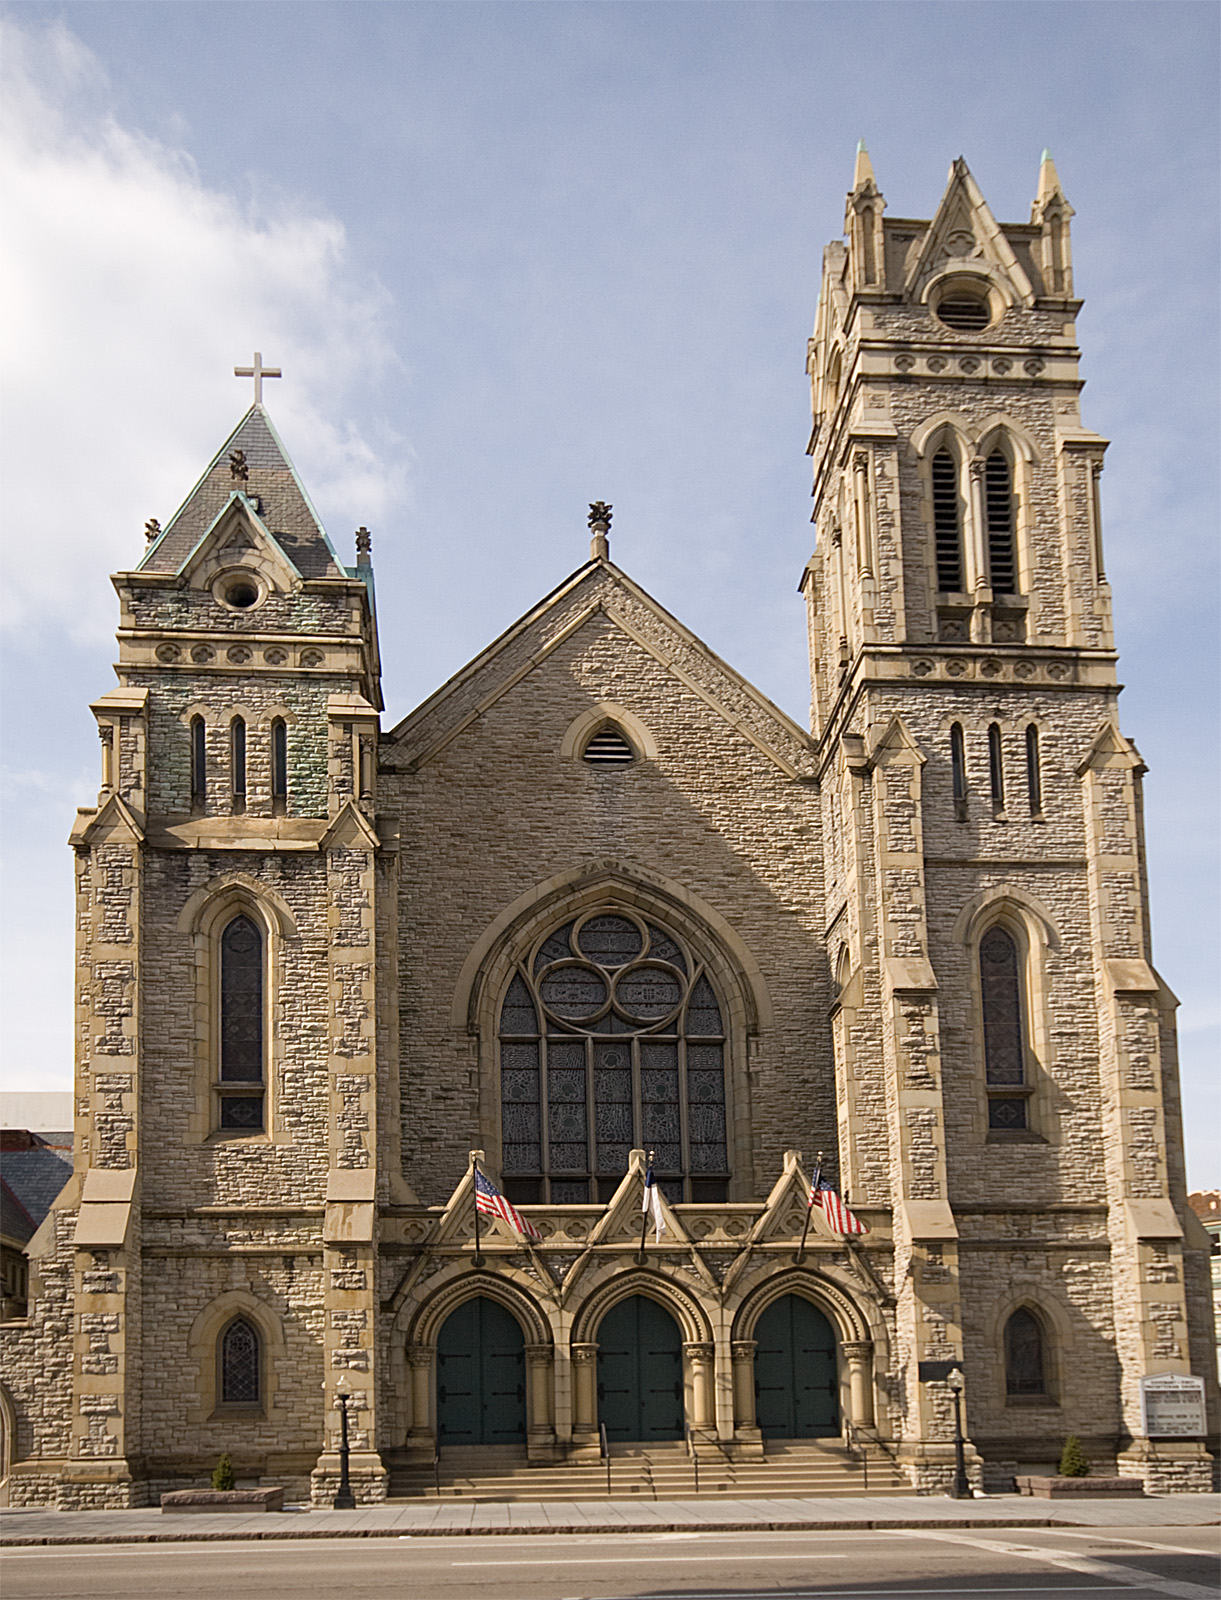 Formerly known as Second Presbyterian Church of Cincinnati, Ohio, Thomas Harvey Skinner, Jr. served as the pastor of this congregation from 1871 to 1881. The building pictured here was built in 1875 and the church is now known as Covenant  First Presbyterian Church (PCUSA).